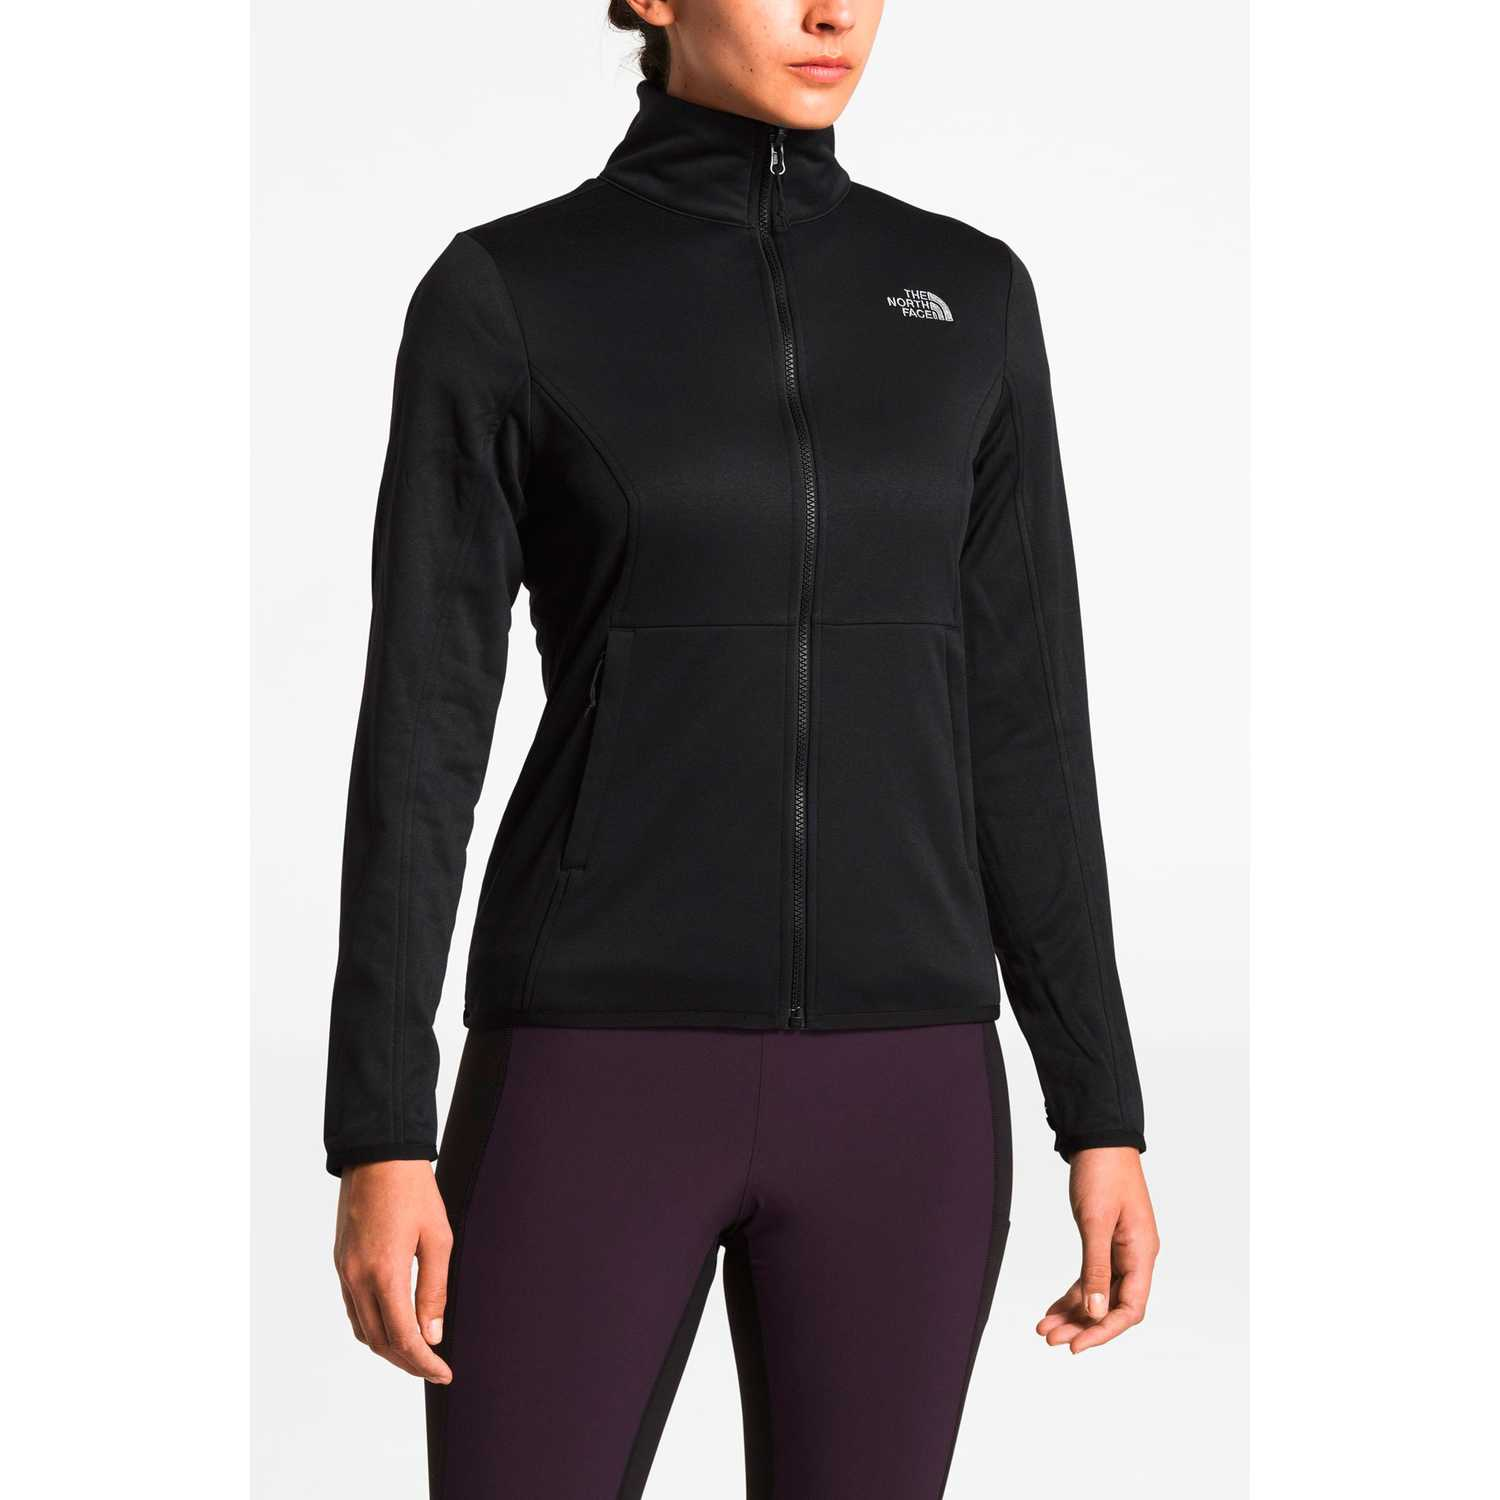 Casacas de Mujer The North Face Negro w arrowood triclimate jacket